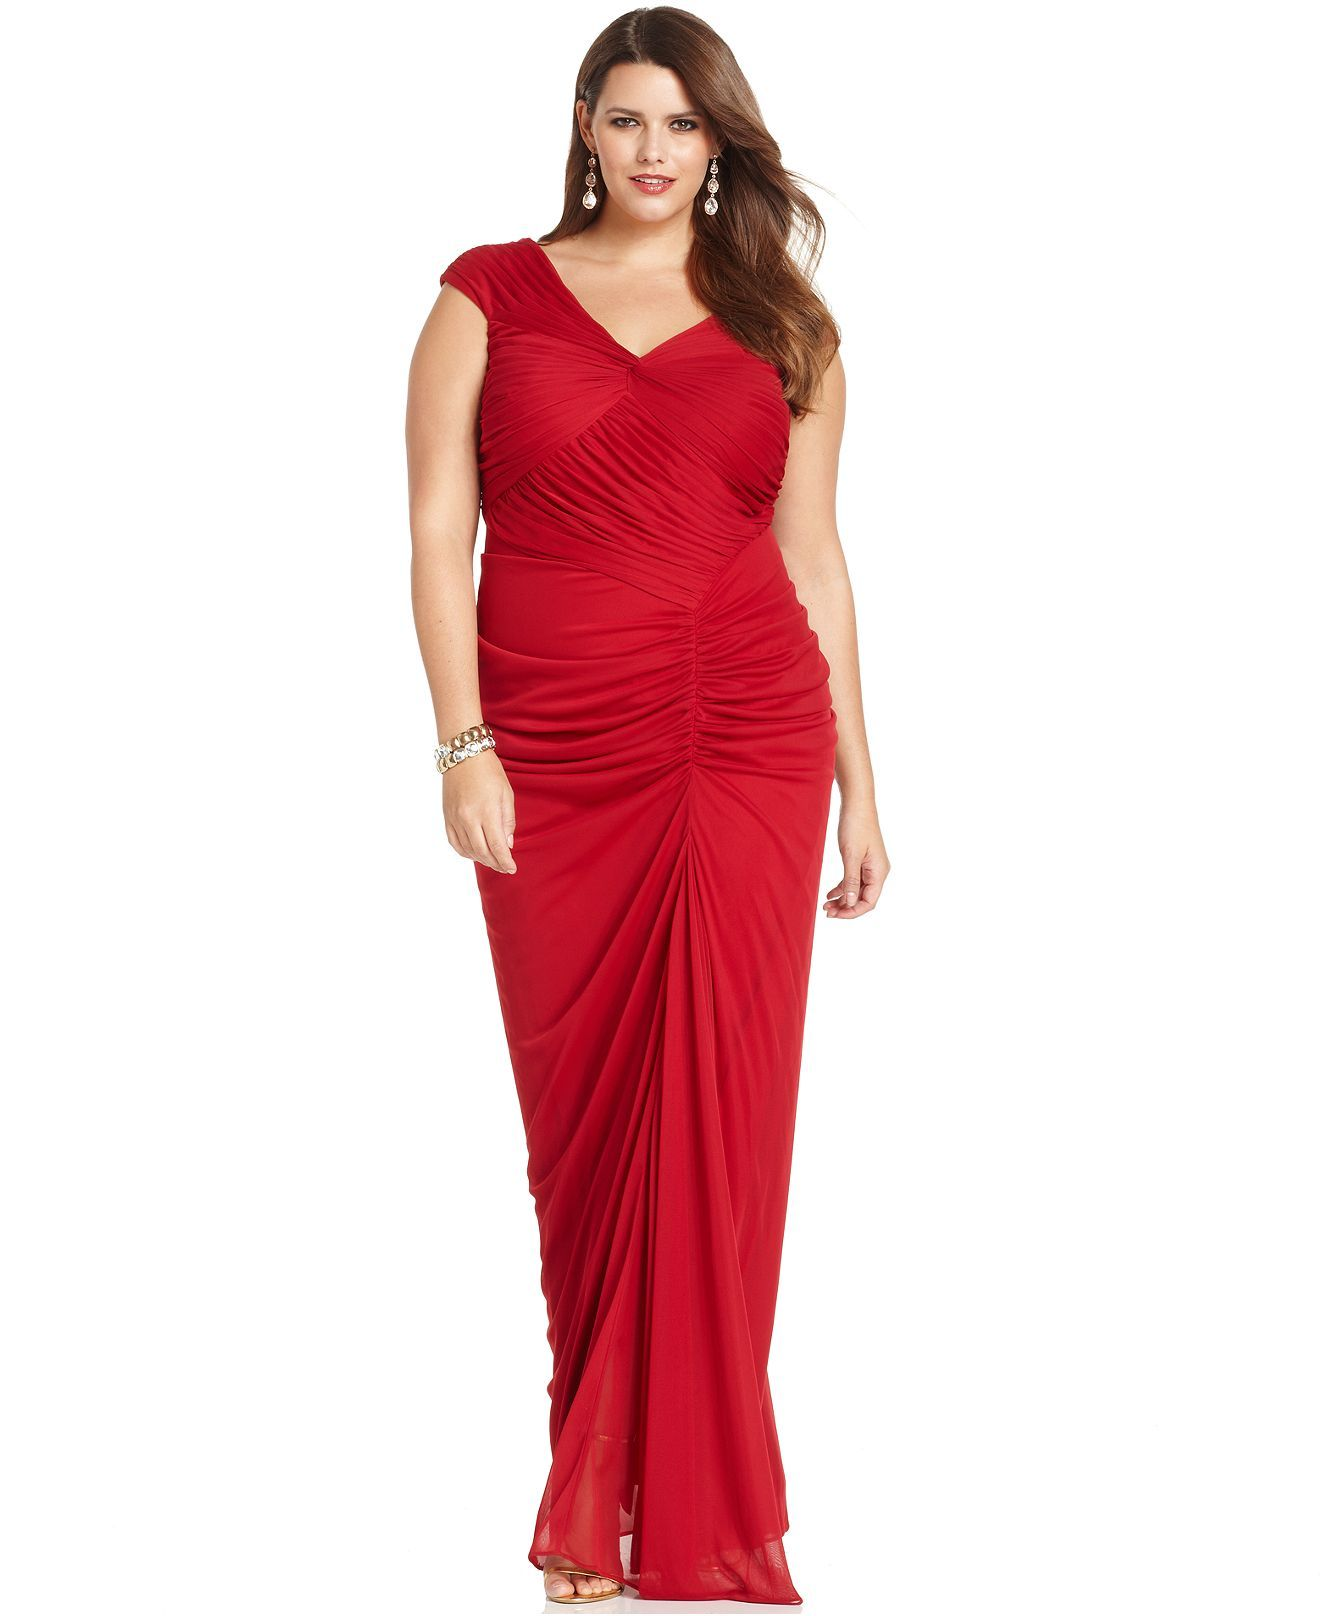 Adrianna Papell Plus Size Dress Cap Sleeve Ruched Gown Plus Size